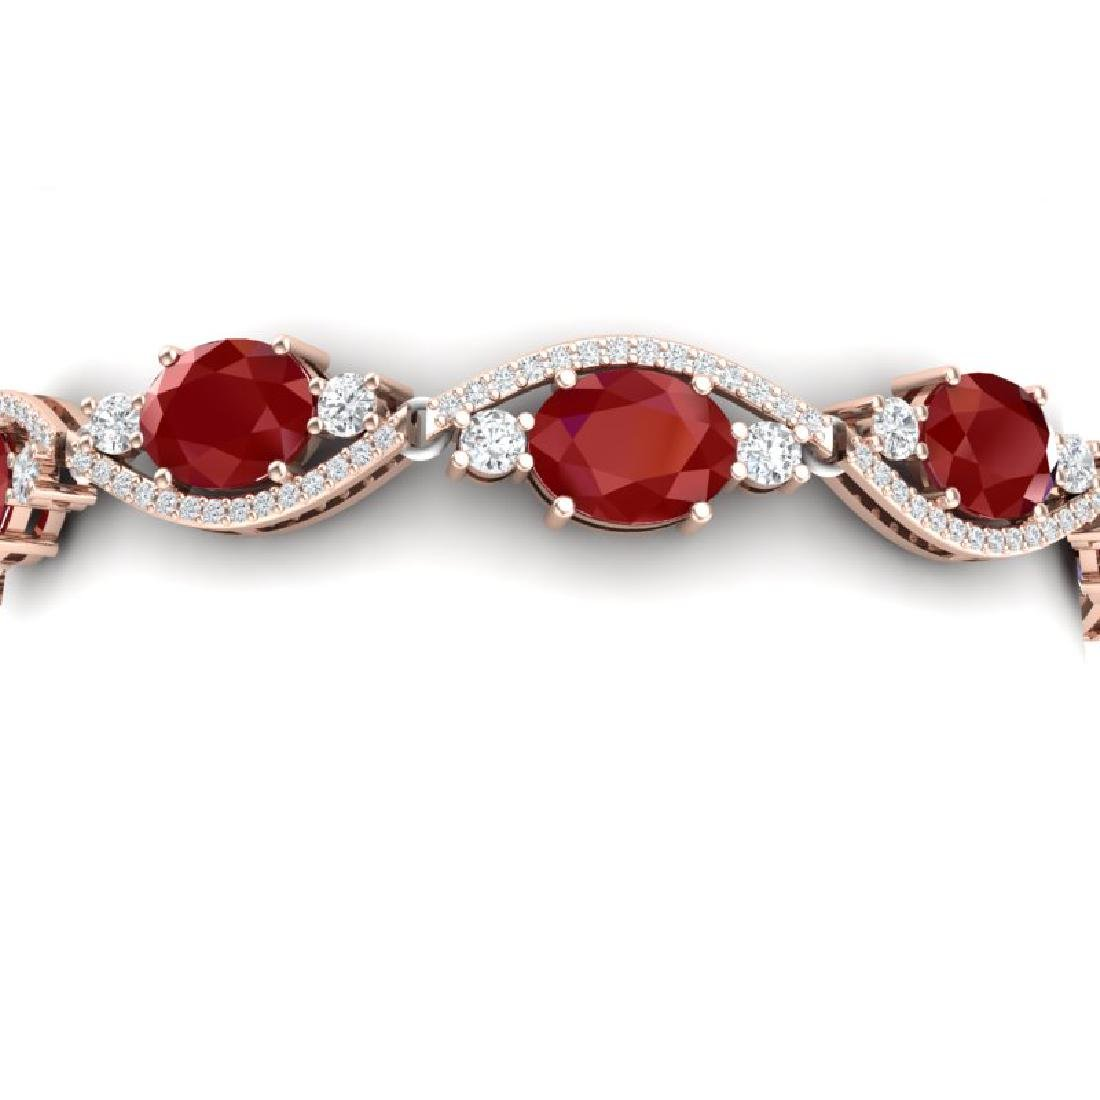 22.15 CTW Royalty Ruby & VS Diamond Bracelet 18K Rose